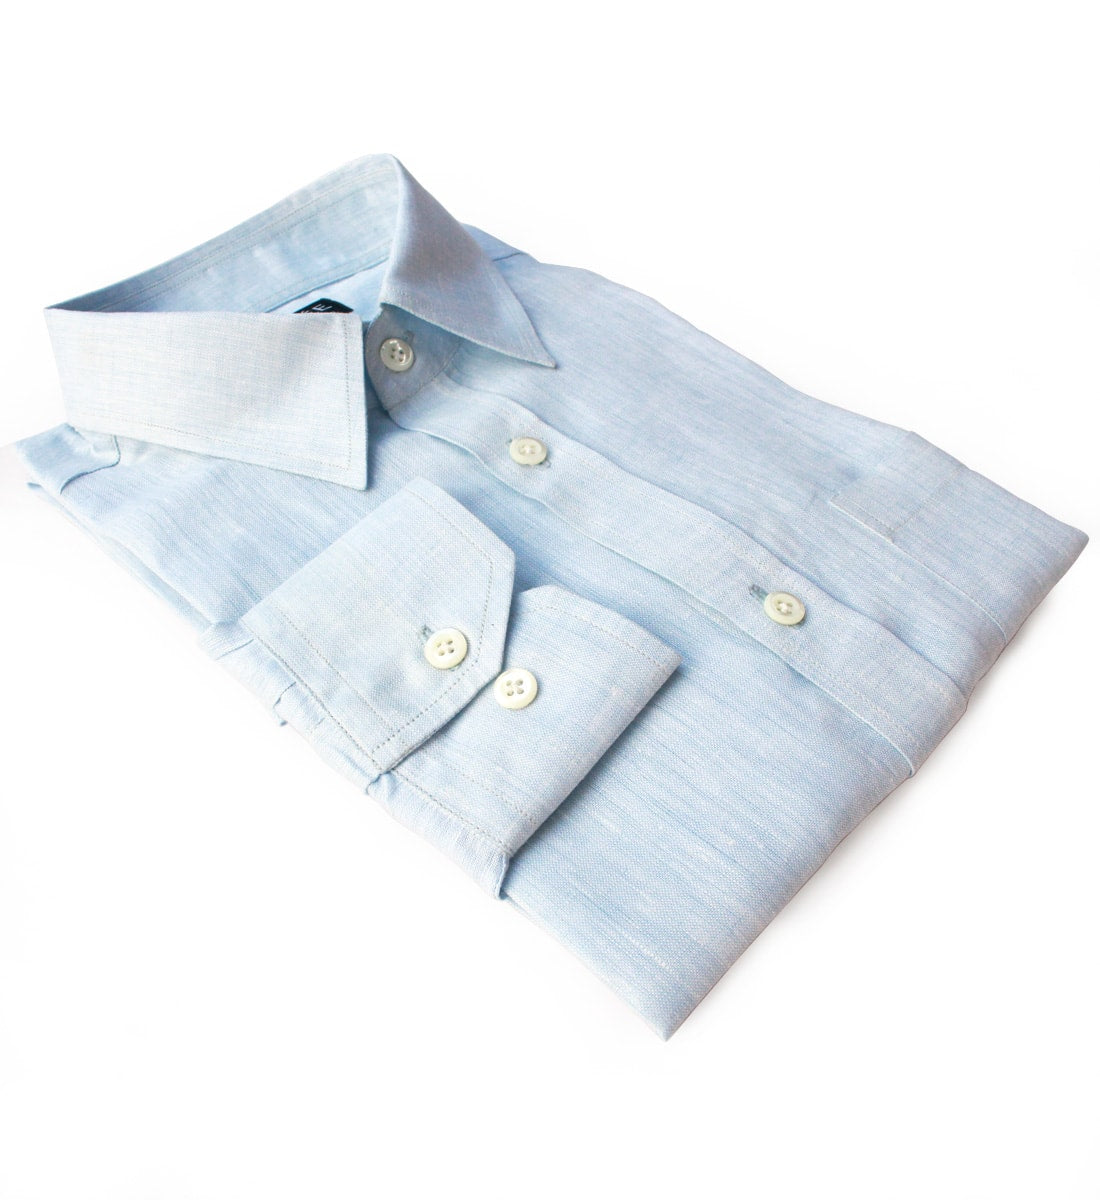 Privee Paris Light Blue Linen Shirt